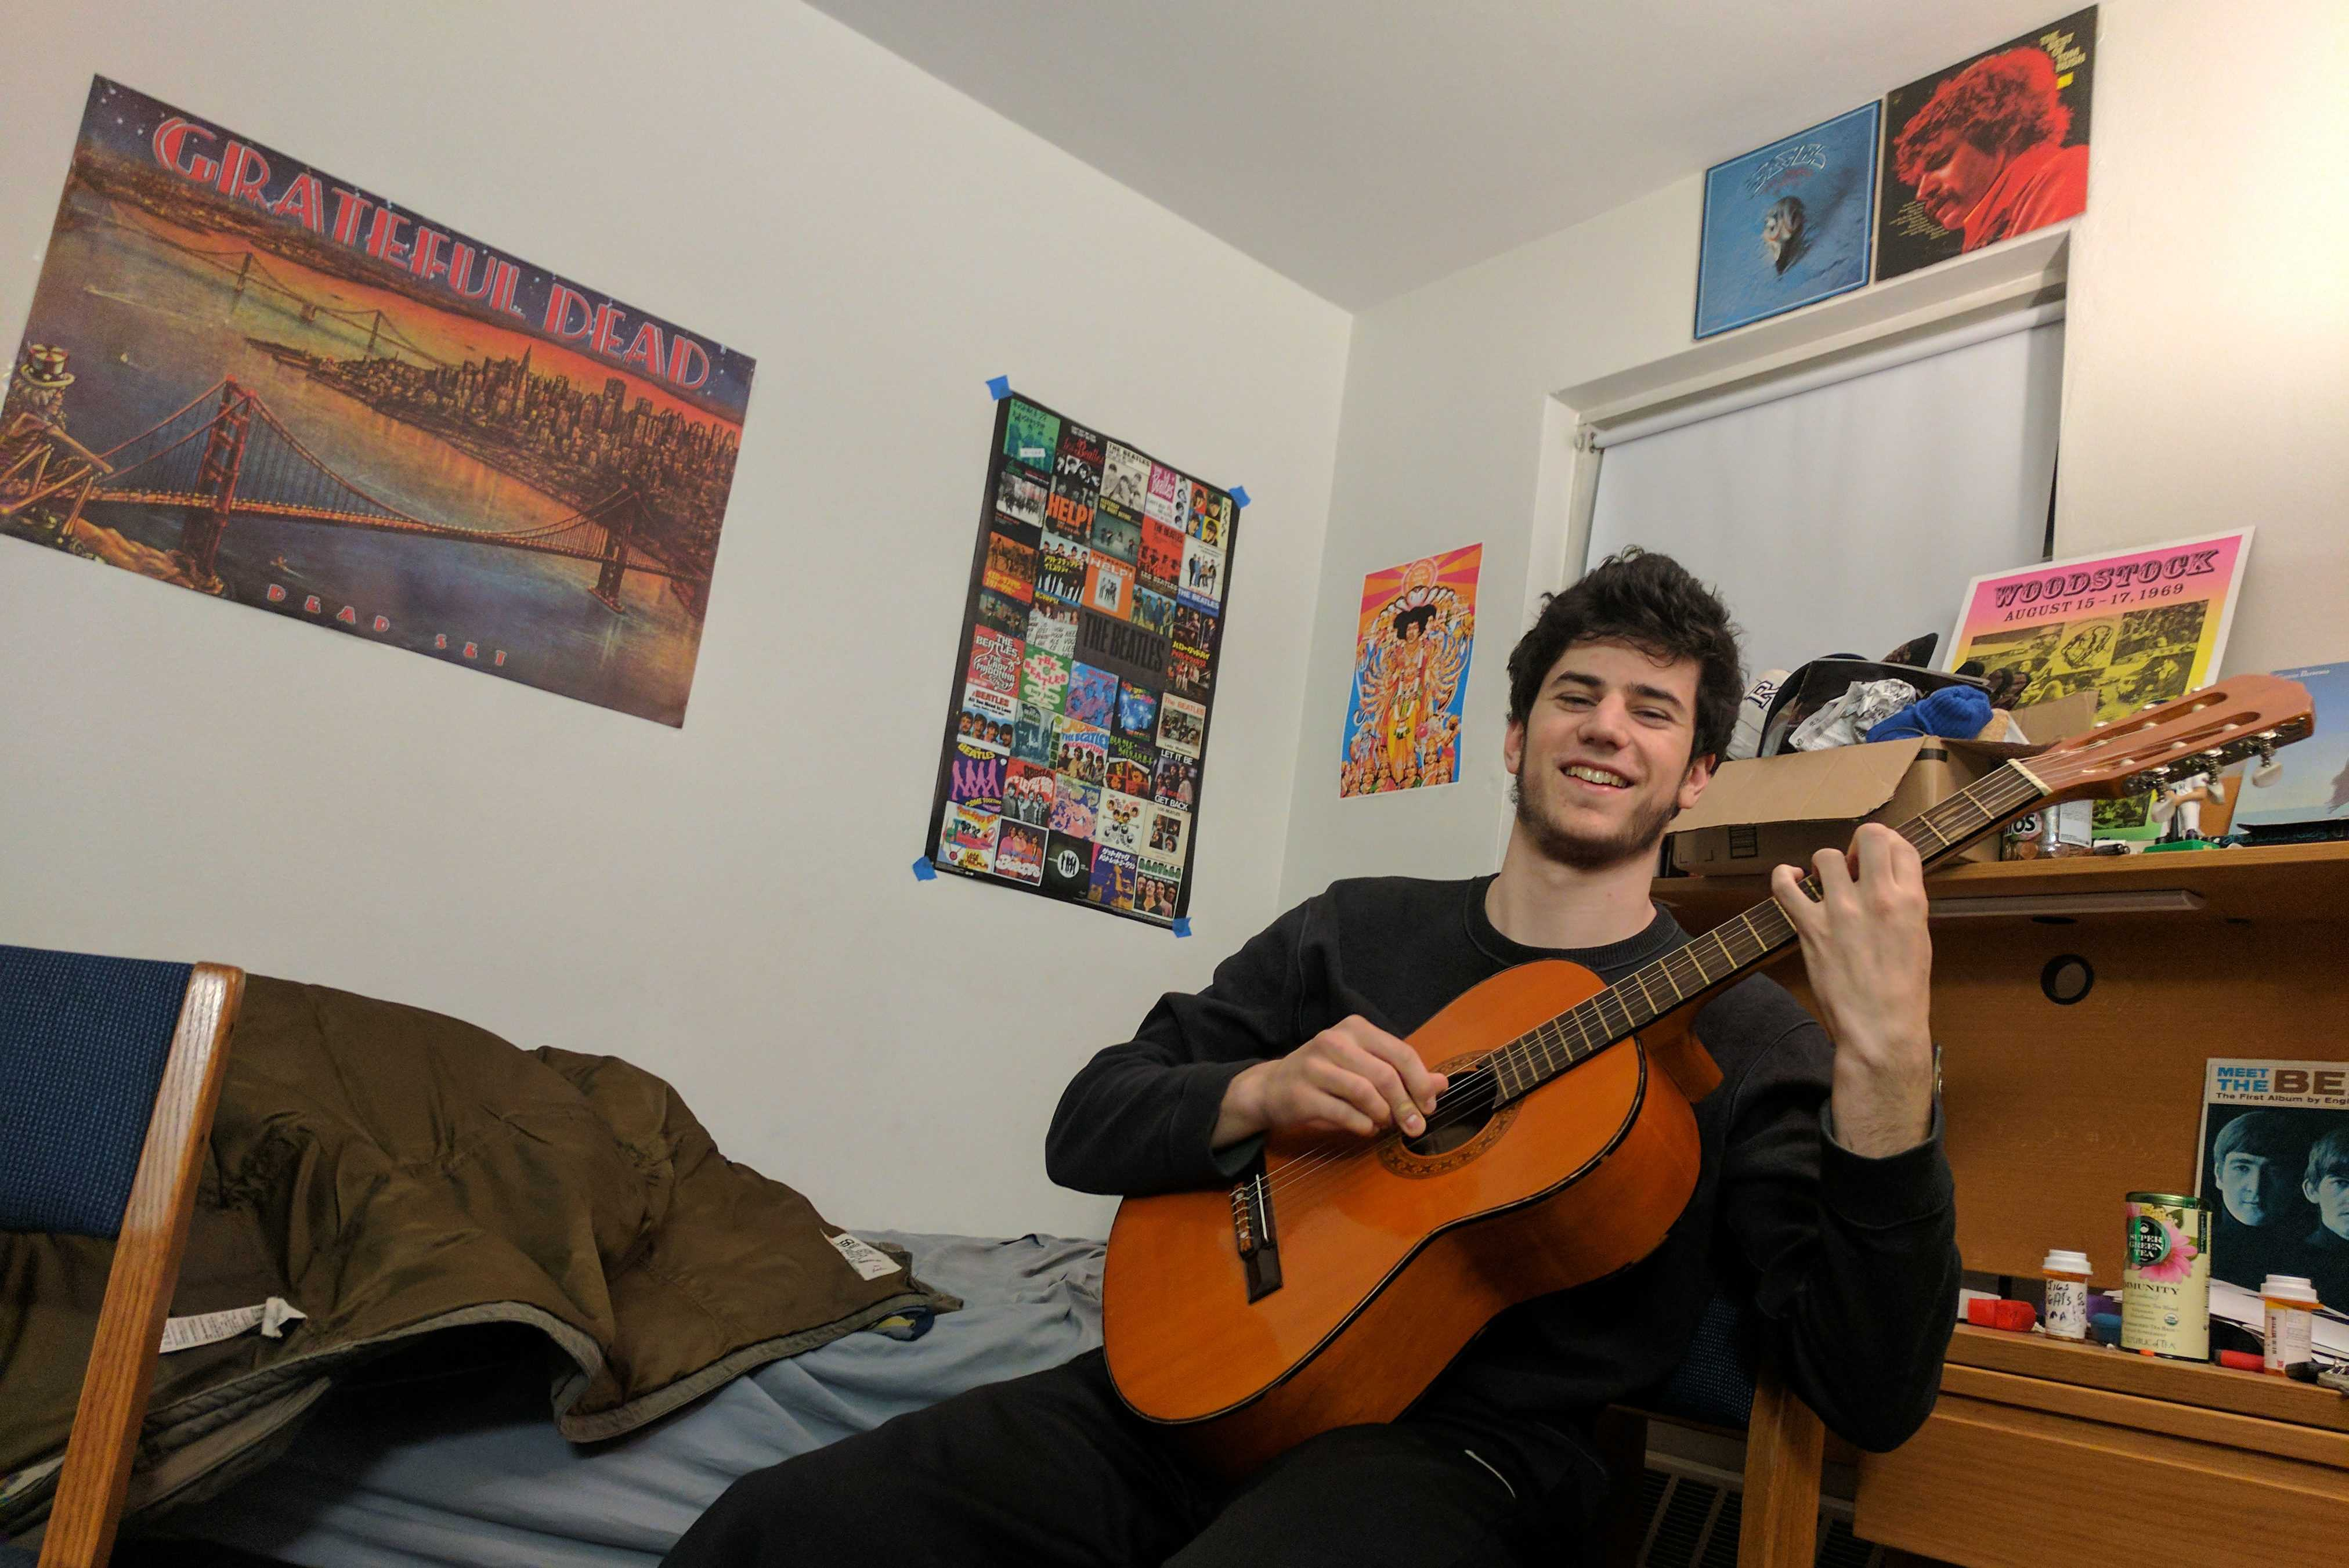 """Jacob Hill '19 of """"Vinyl Fridays"""" demonstrates his guitar skills in front of his classic rock posters. Photo by Nieberg '19."""